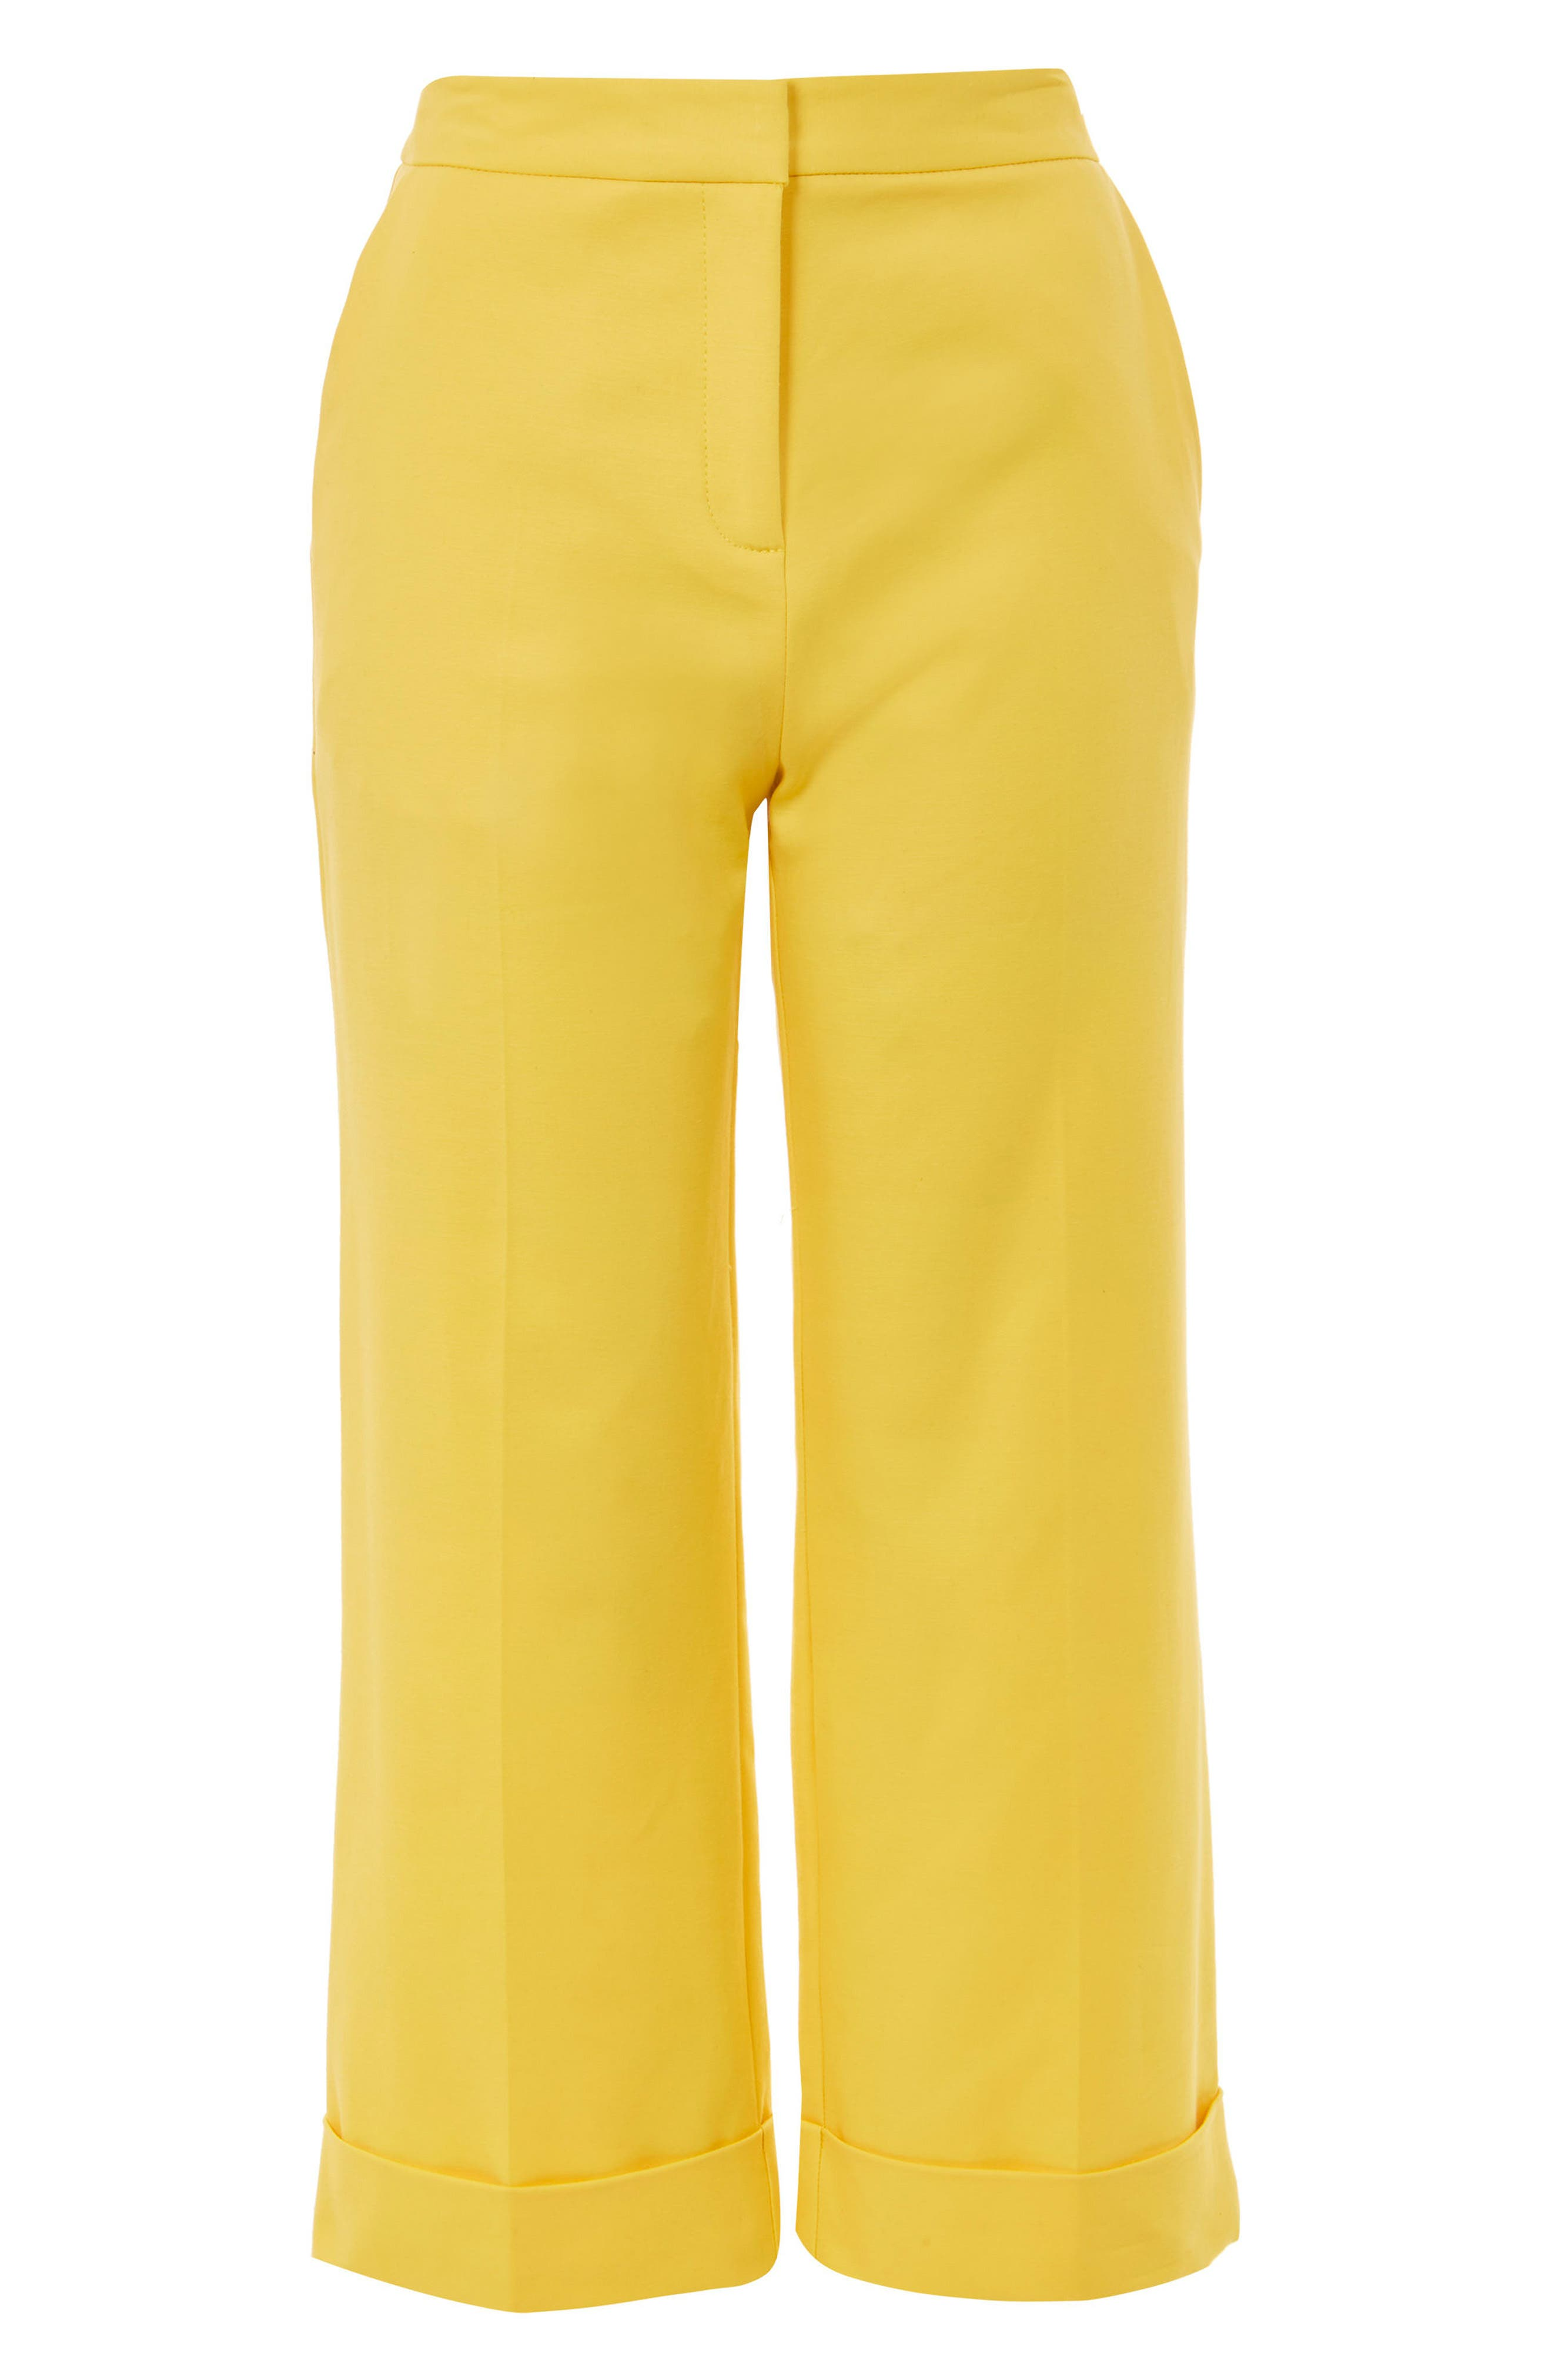 Milly Crop Suit Trousers,                             Alternate thumbnail 3, color,                             700